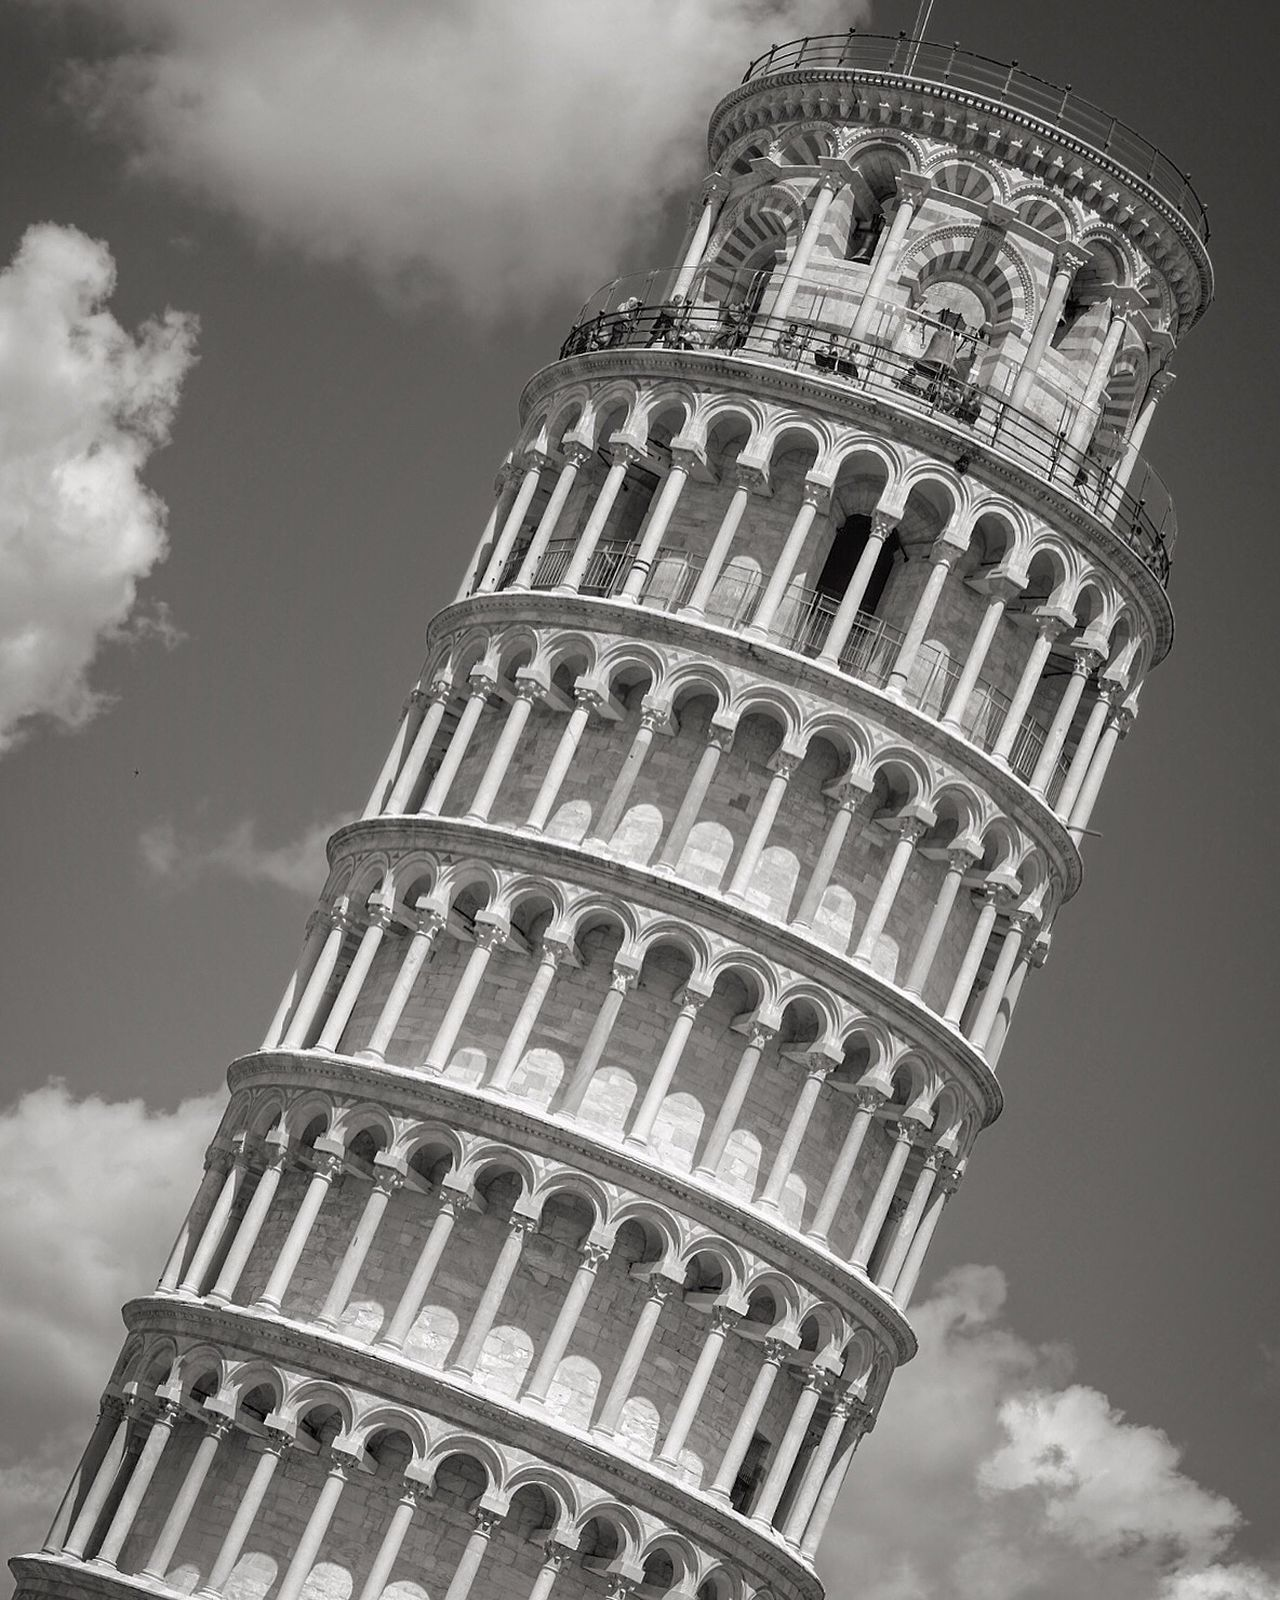 Italia Exterior Pisa Leaning Tower Of Pisa Tuscany Toscana Architecture Low Angle View Bell Tower Blackandwhite Photography Blackandwhite History Holidays Tourist Attraction  Tourist Travel Destinations Religious Architecture Religion Tourism No People Fujifilm_xseries Outdoors Fujifilm Built Structure Travel